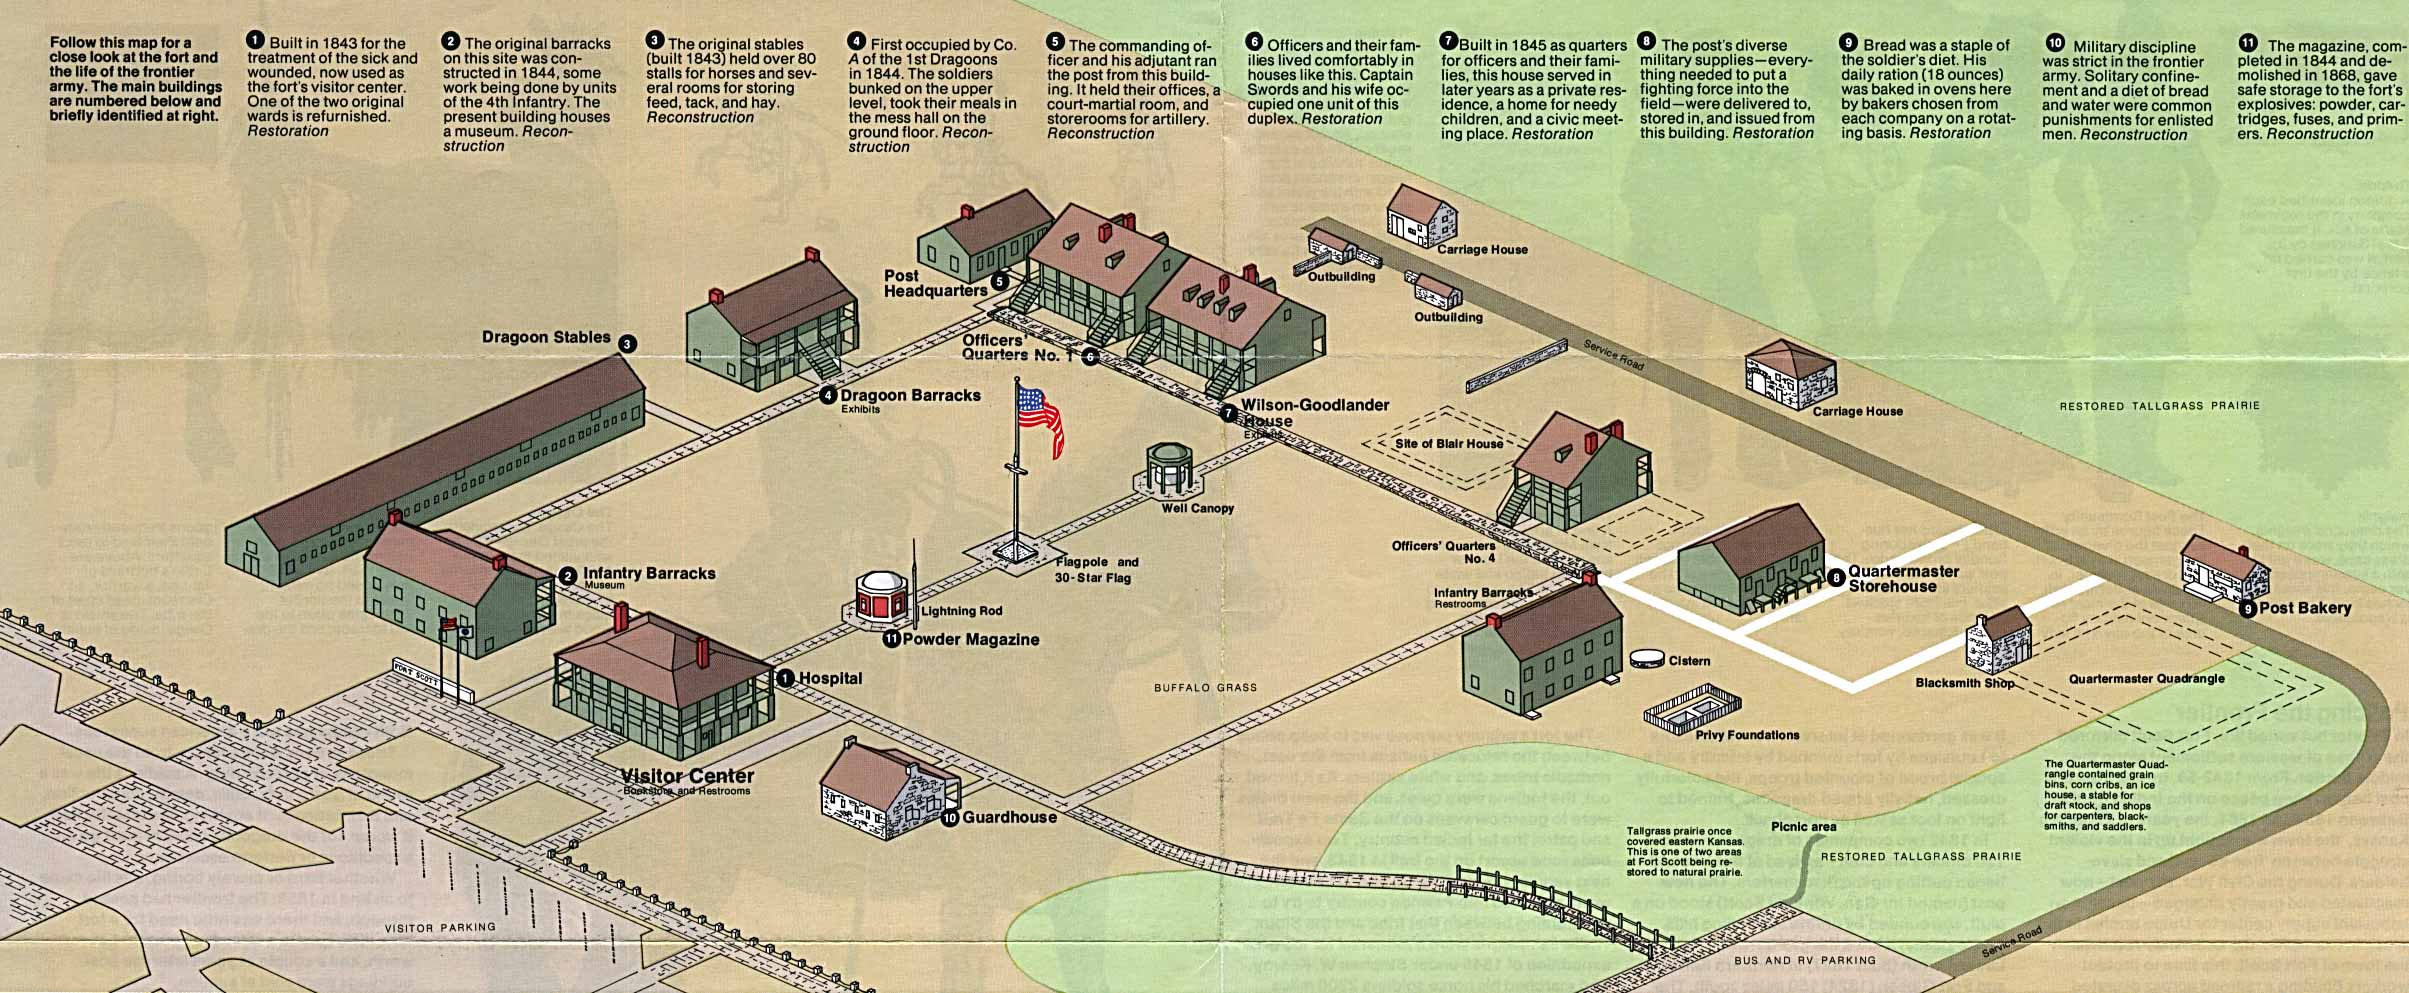 Larned (KS) United States  City pictures : Fort Scott National Historic Site Schematic Map, Kansas, United States